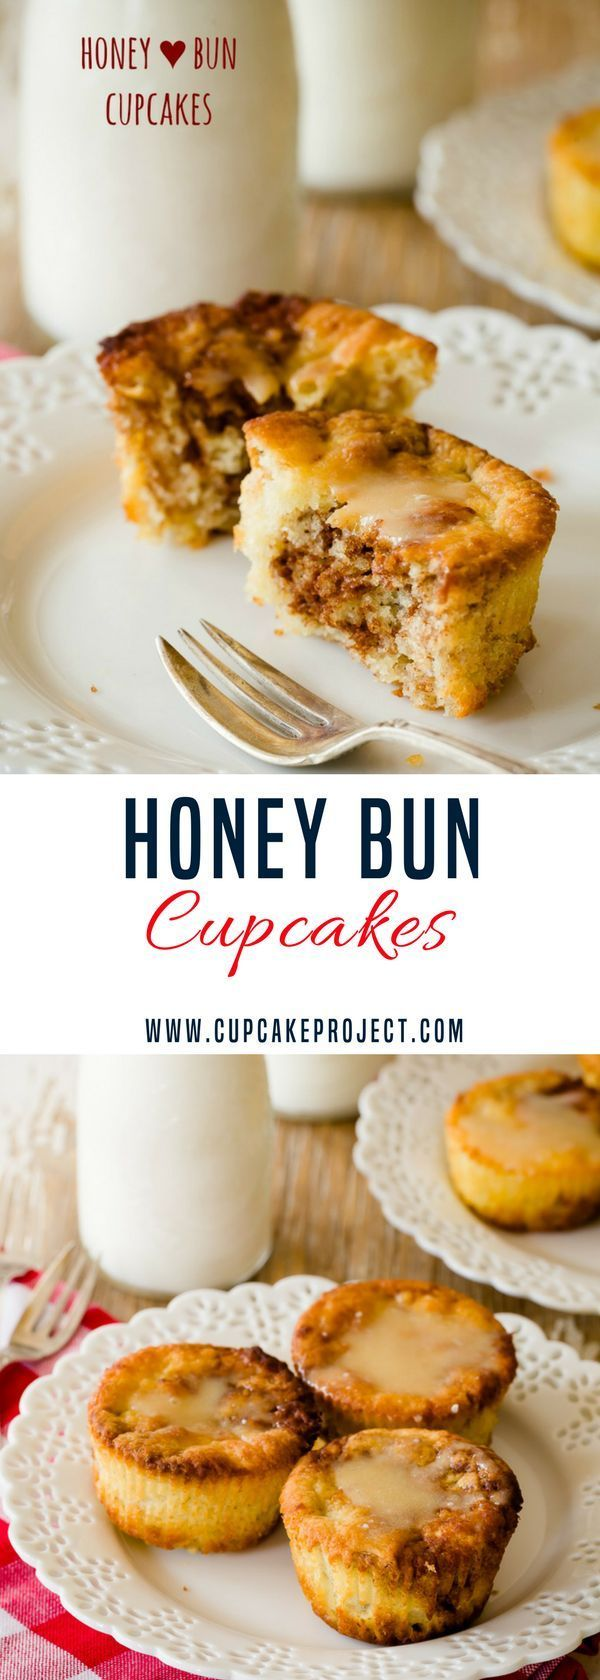 Looking for honeybuns recipes? Honey buns are essentially cinnamon buns made with a cinnamon honey swirl filling and topped with a honey glaze. Add this to your best of Valentines ideas! More easy and from scratch baking recipes from #CupcakeProject #brea